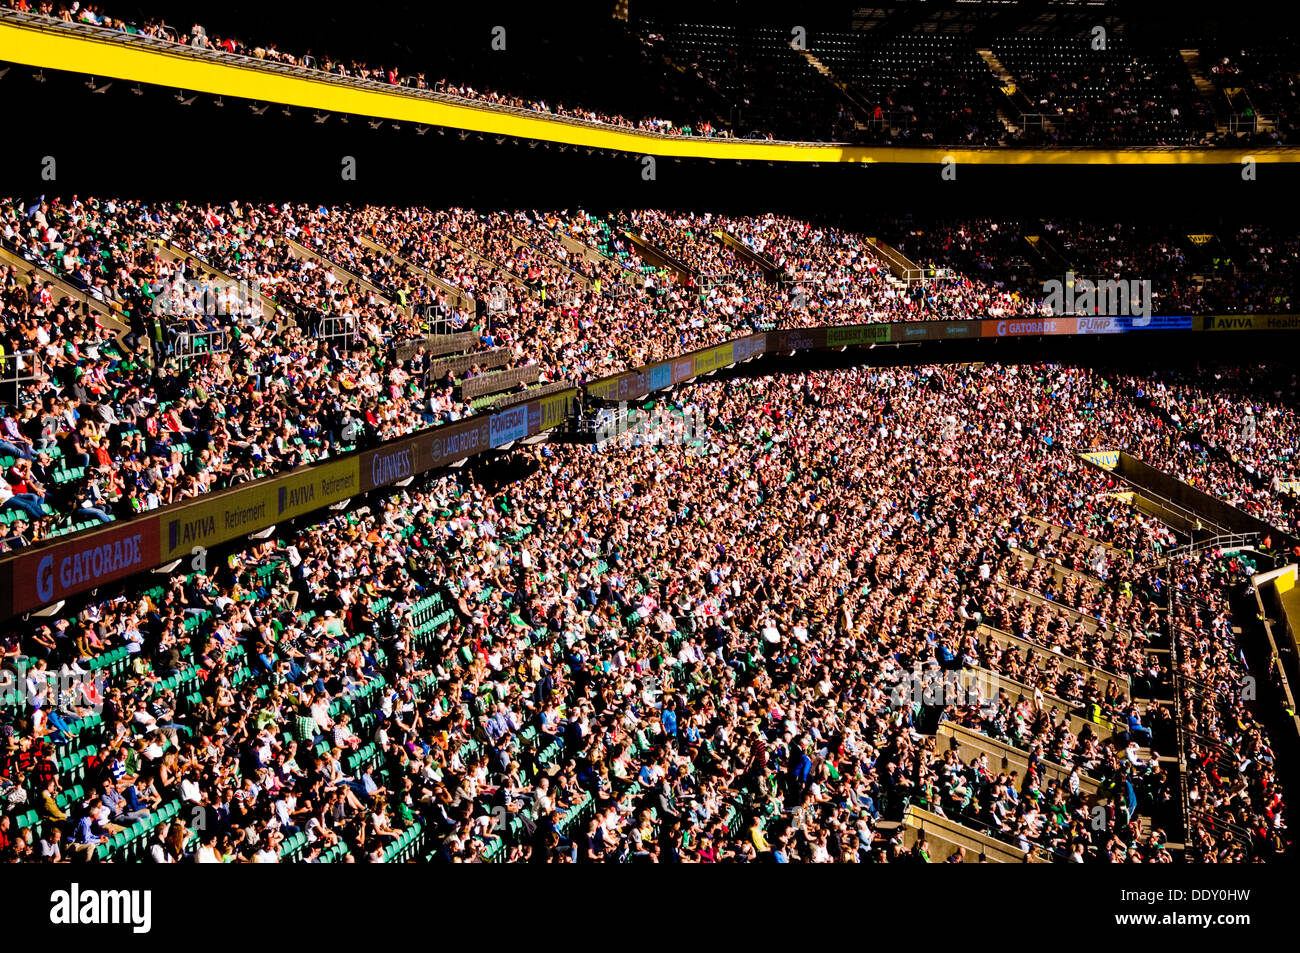 Supporters at Twickenham Rugby Stadium south west London England - Stock Image